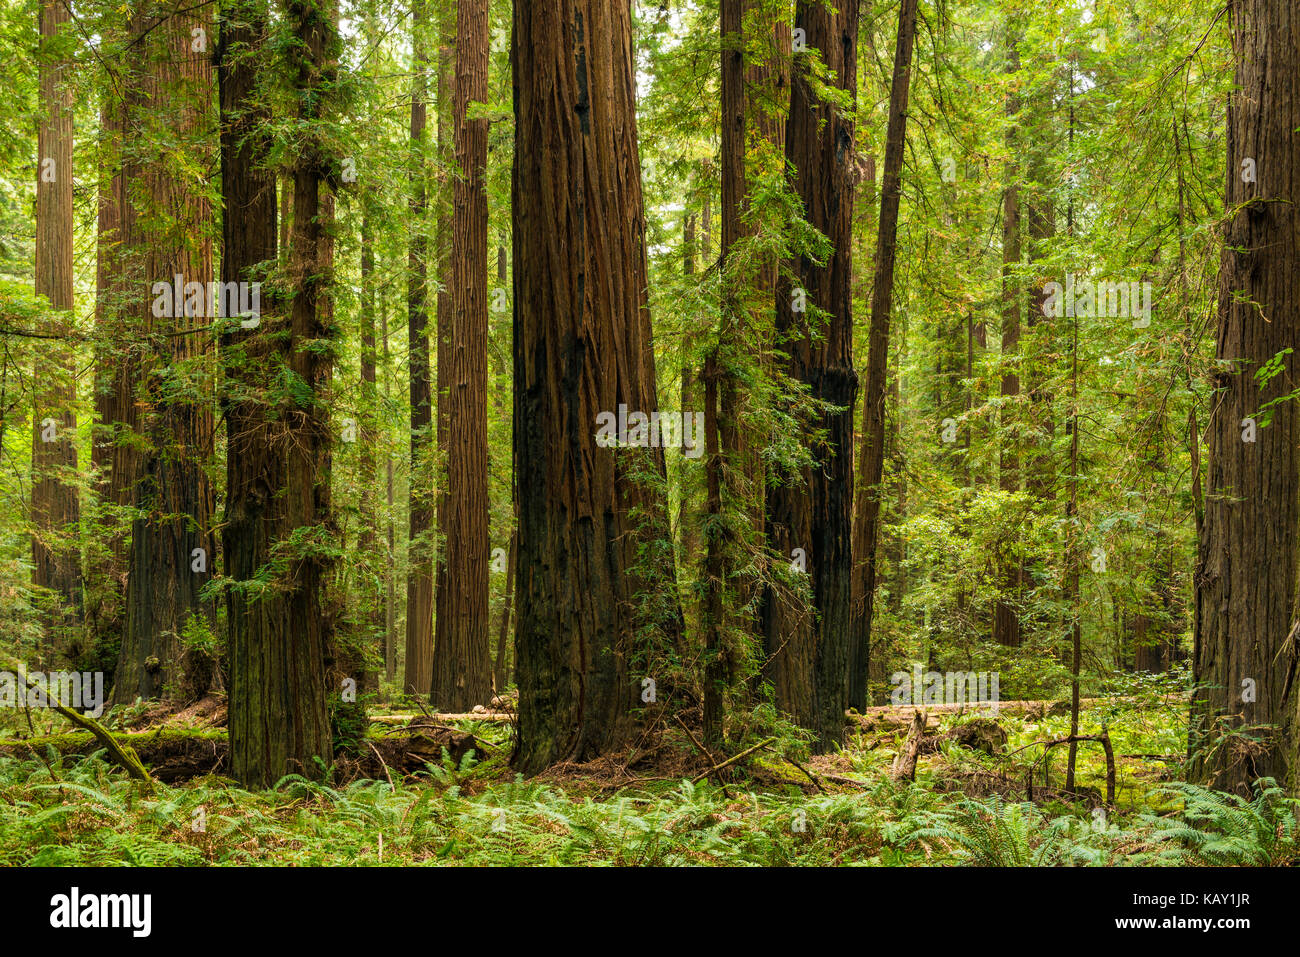 Redwoods along the highway - Stock Image